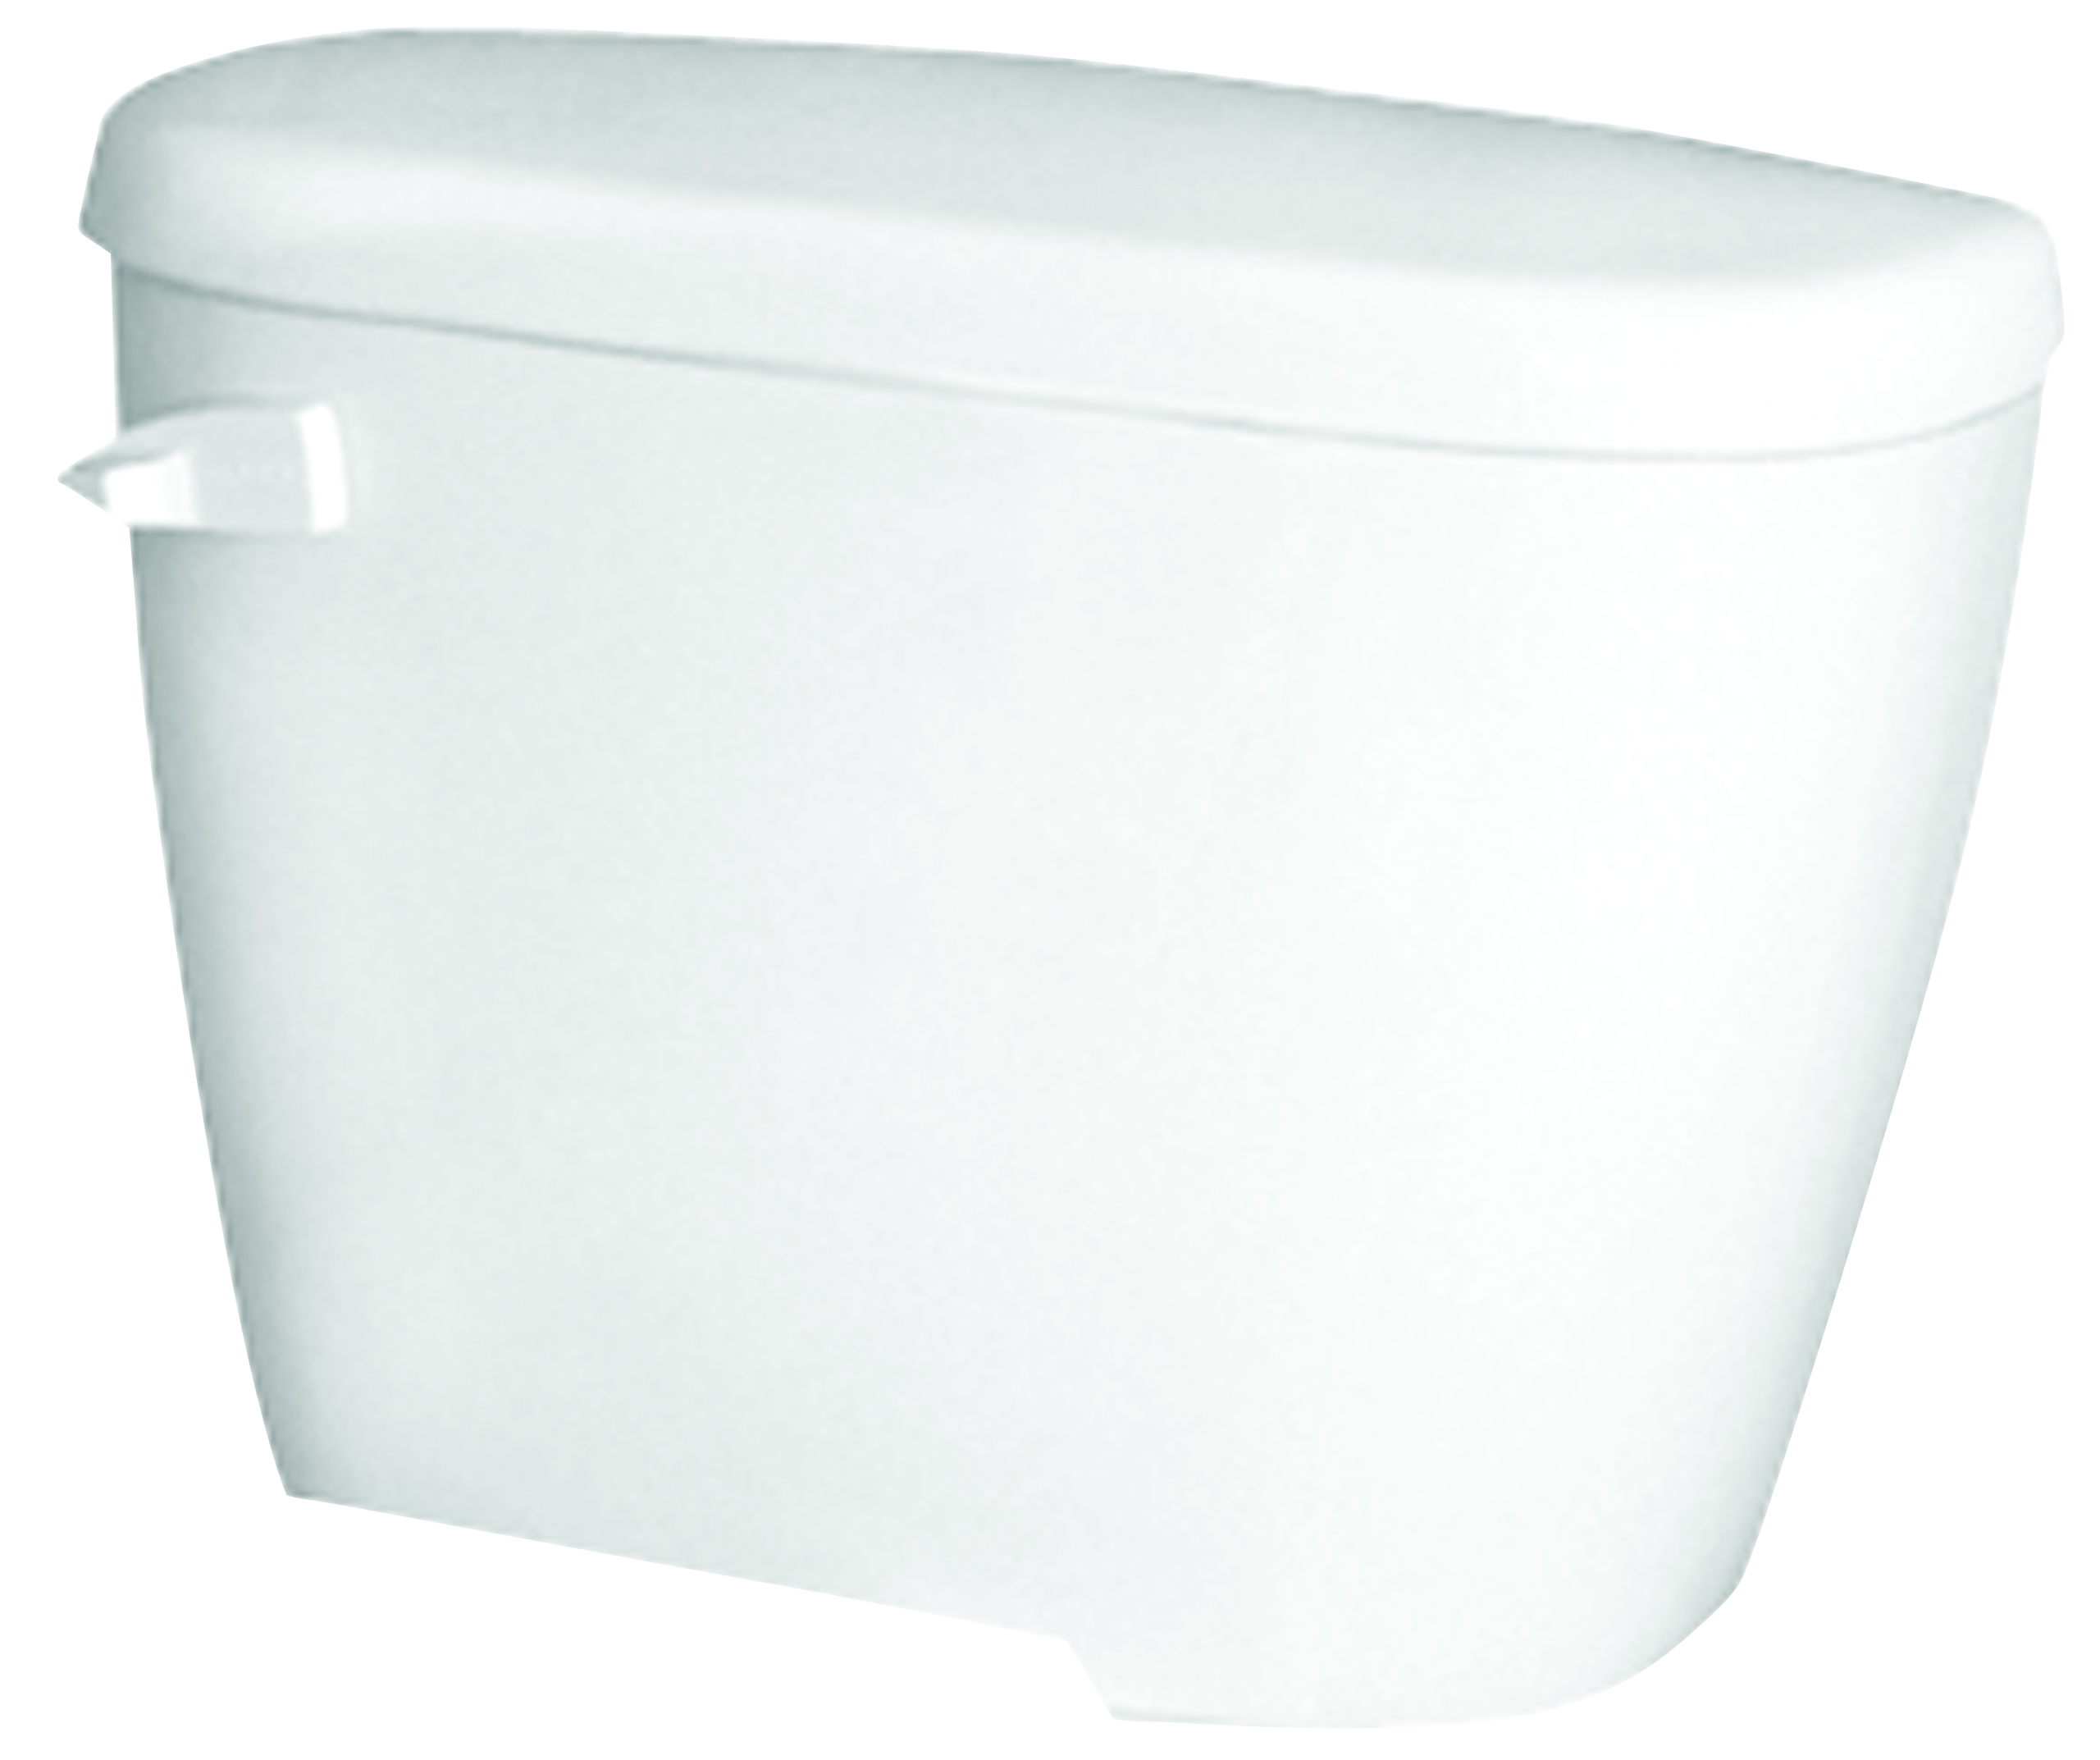 "Gerber Maxwell Siphon Jet Toilet Tank Only , 1.6 Gpf, 12"" Rough-In, White"